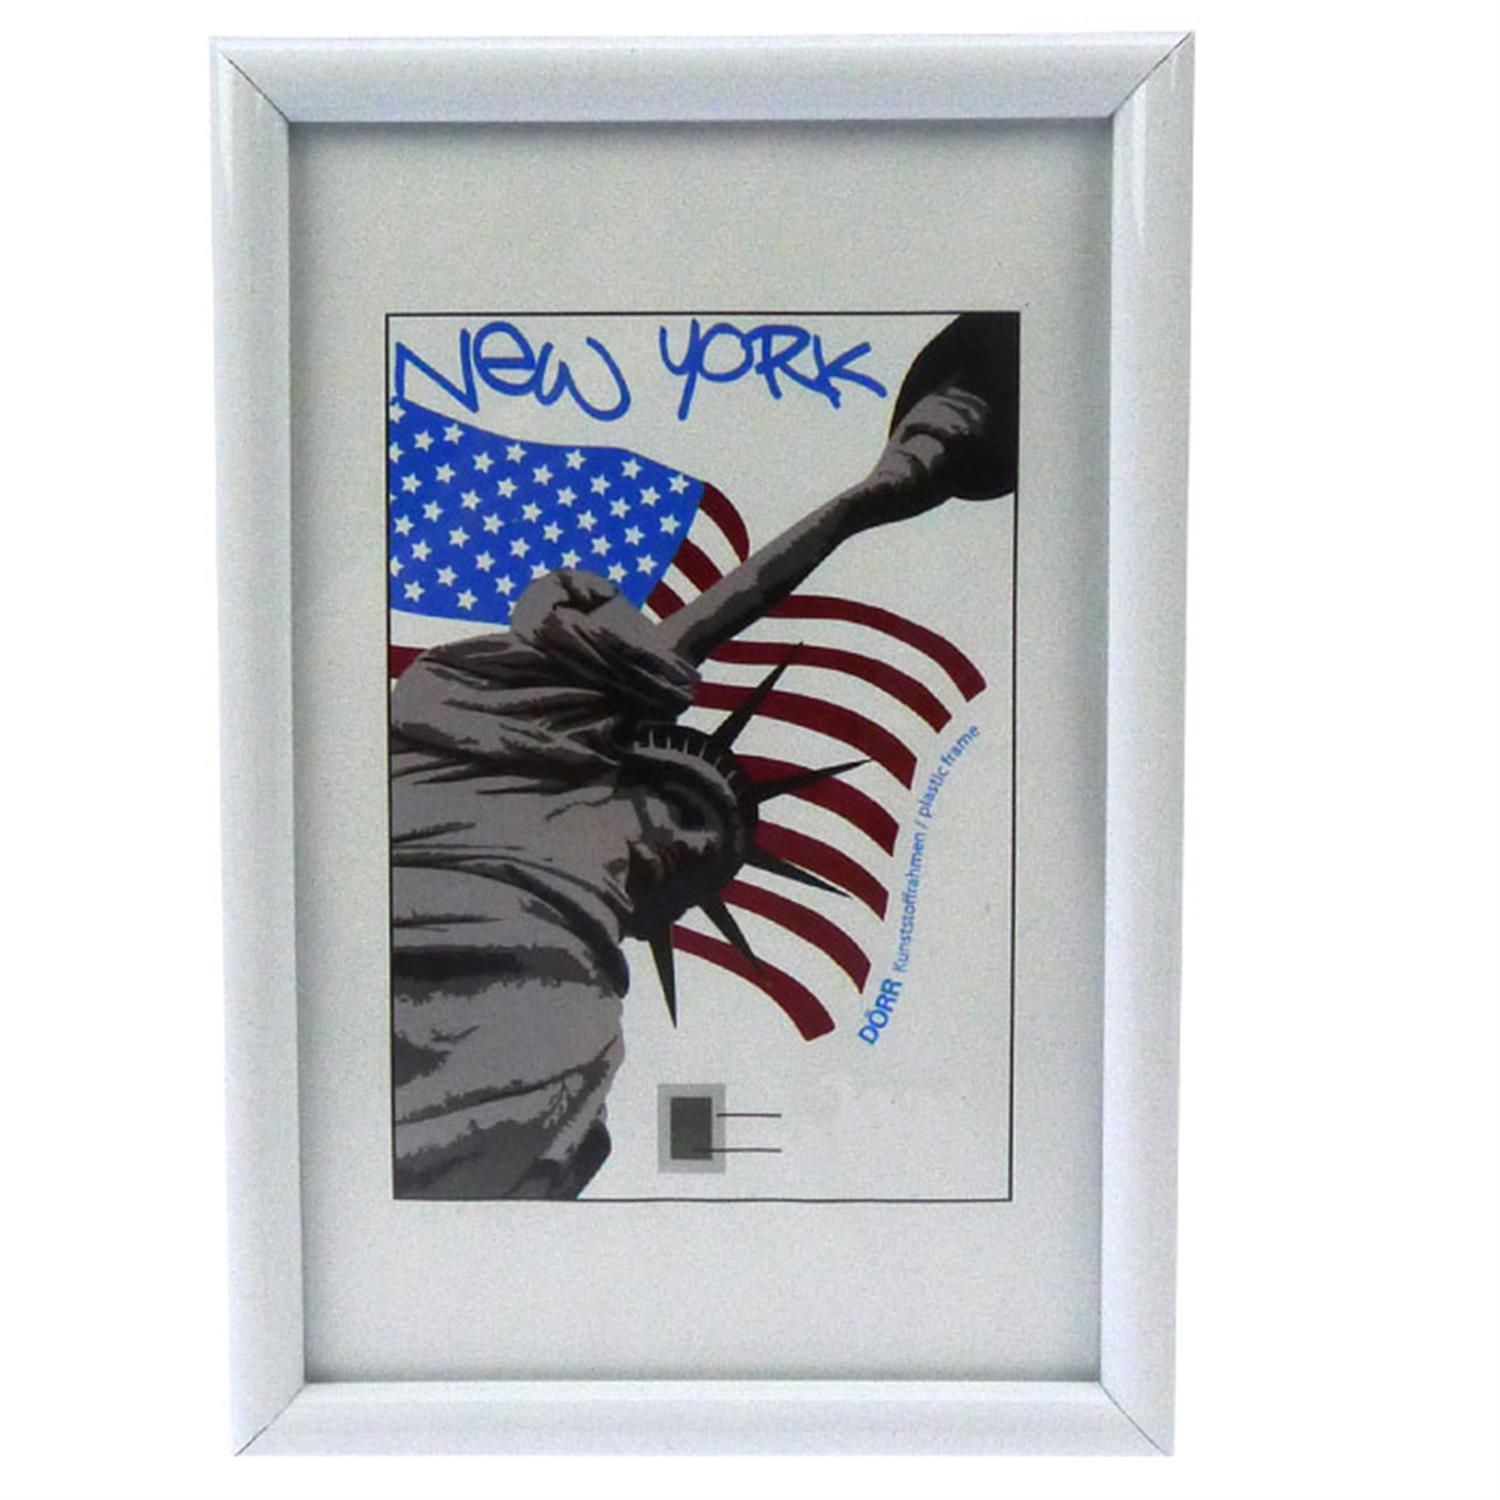 Dorr New York White 12x8 Photo Frame